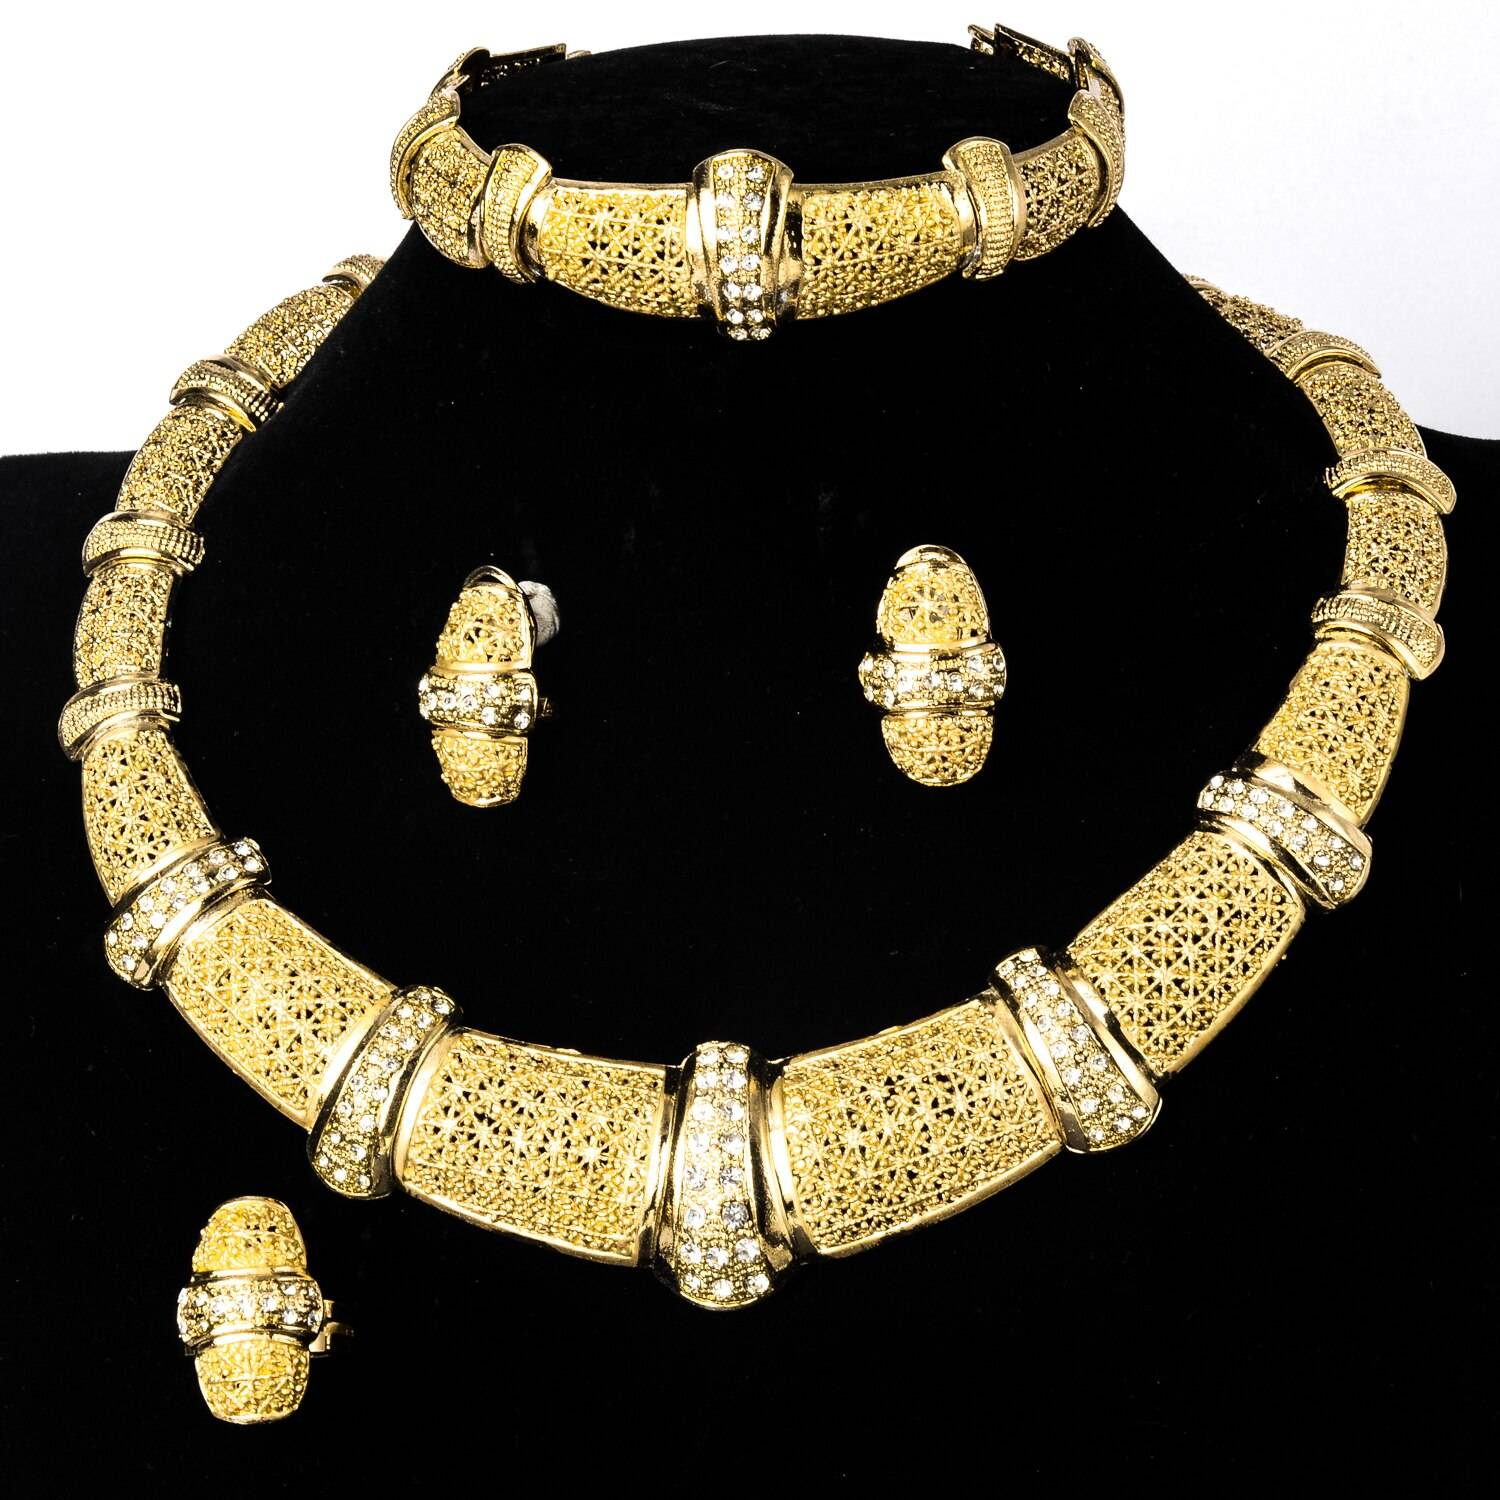 Diana baby Jewelry Sets New Fashion Gold Planted Bridal Zircon Earrings Necklace Bangle Ring For Women Classic Trendy Gift Wedding Jewellery Set Metal Color: Jewelry Sets